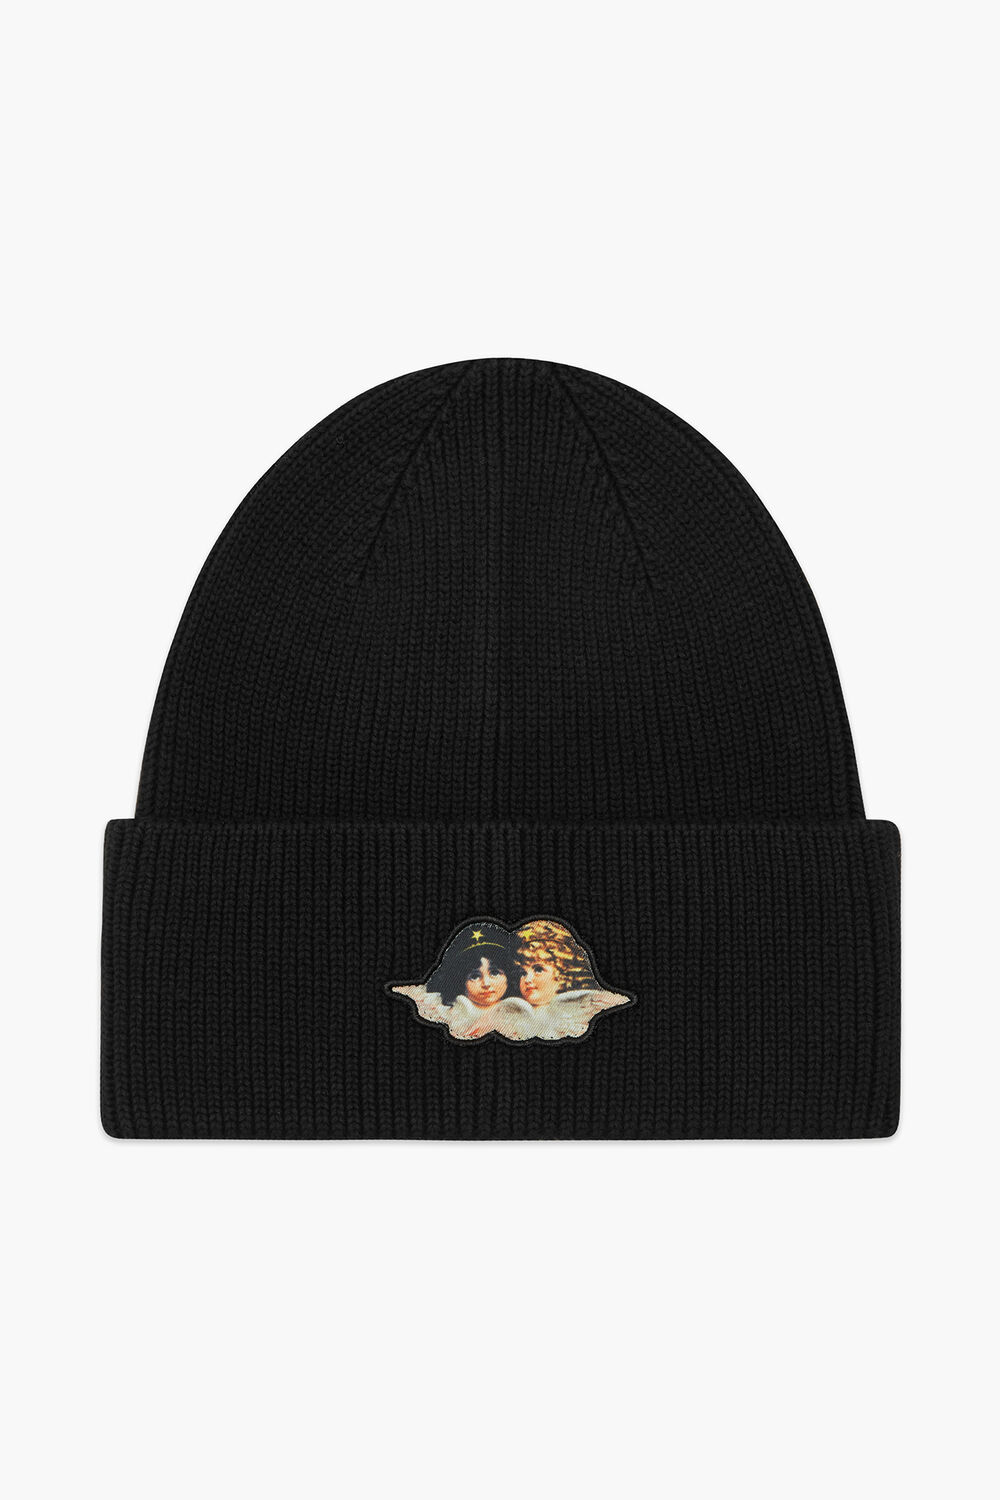 Icon Angels Patch Beanie Black